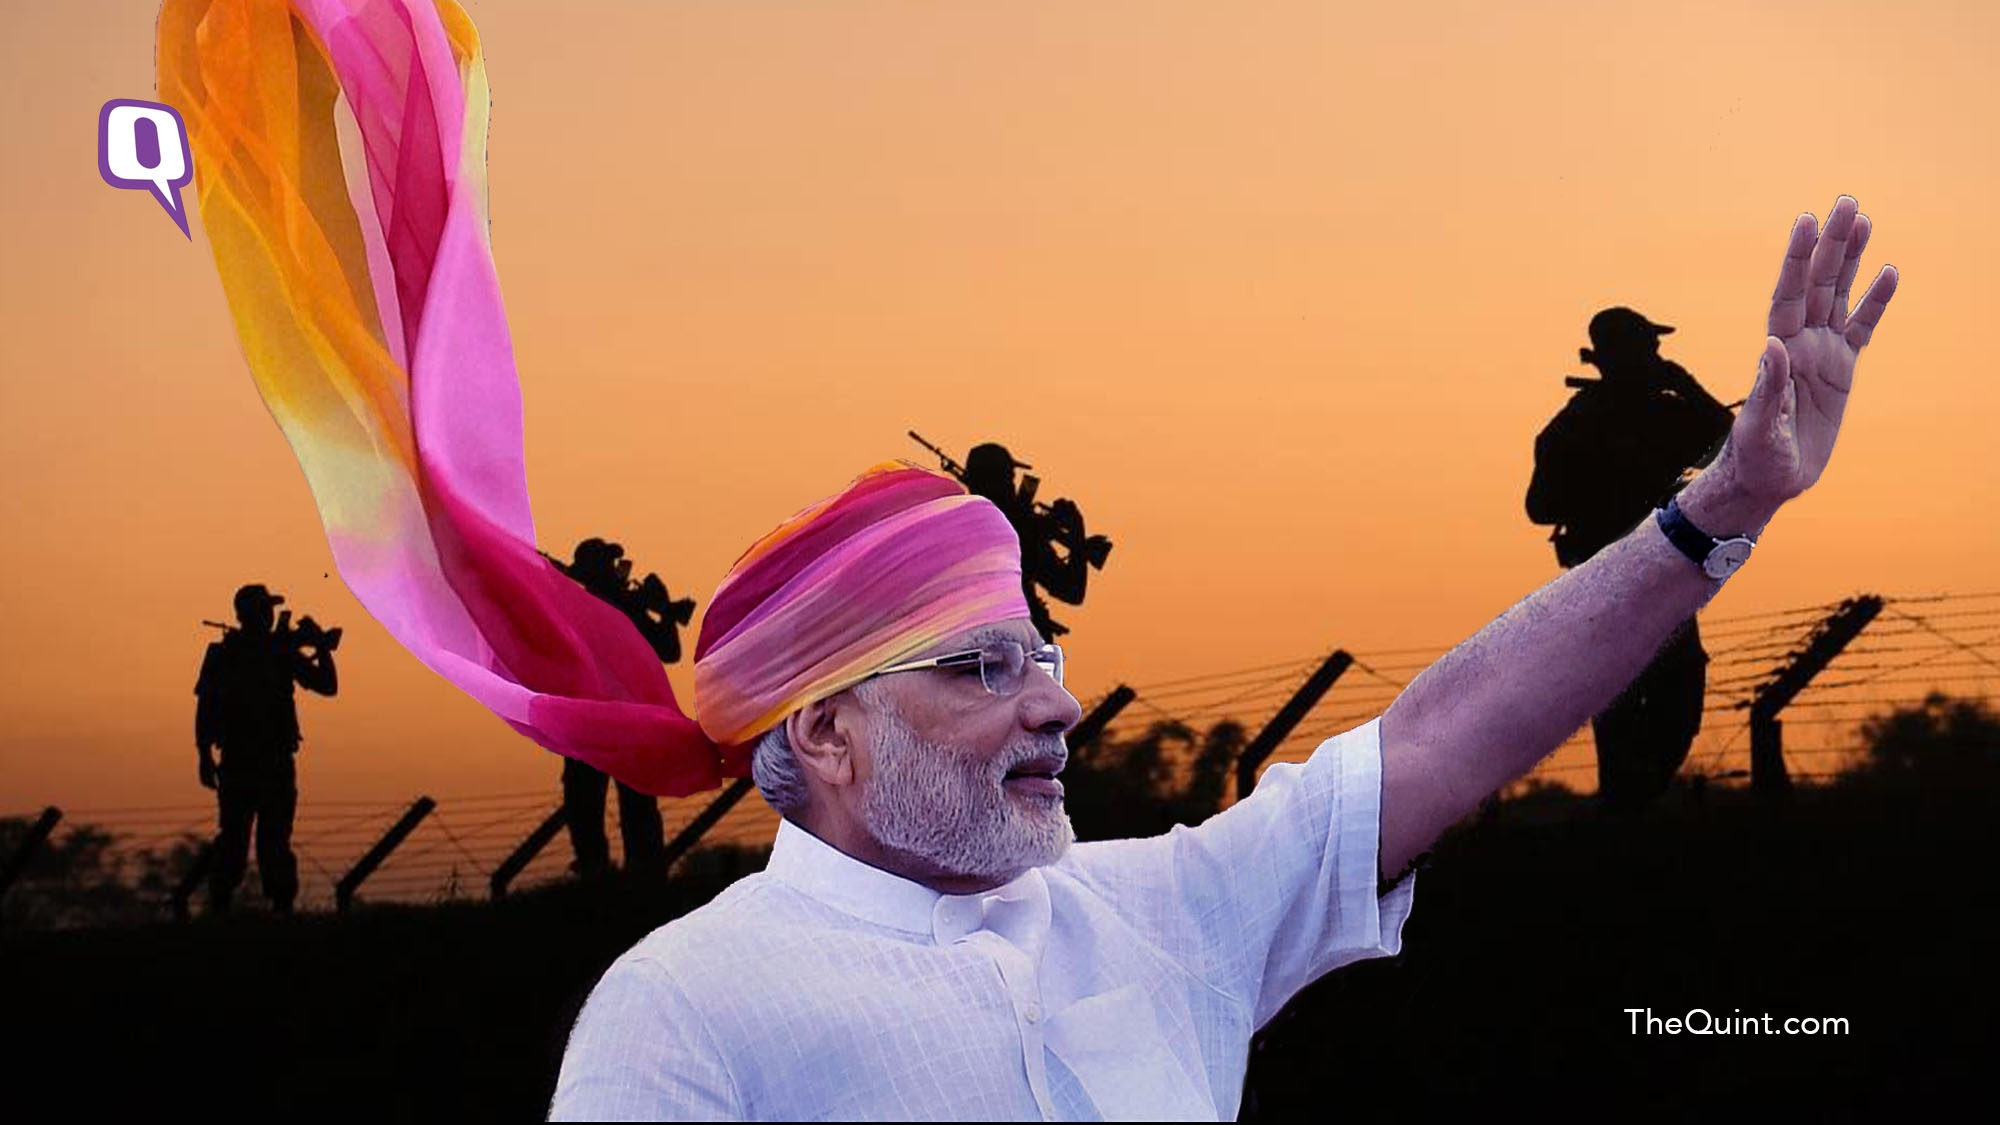 There Are No Records of Surgical Strikes Under UPA Regime: Modi